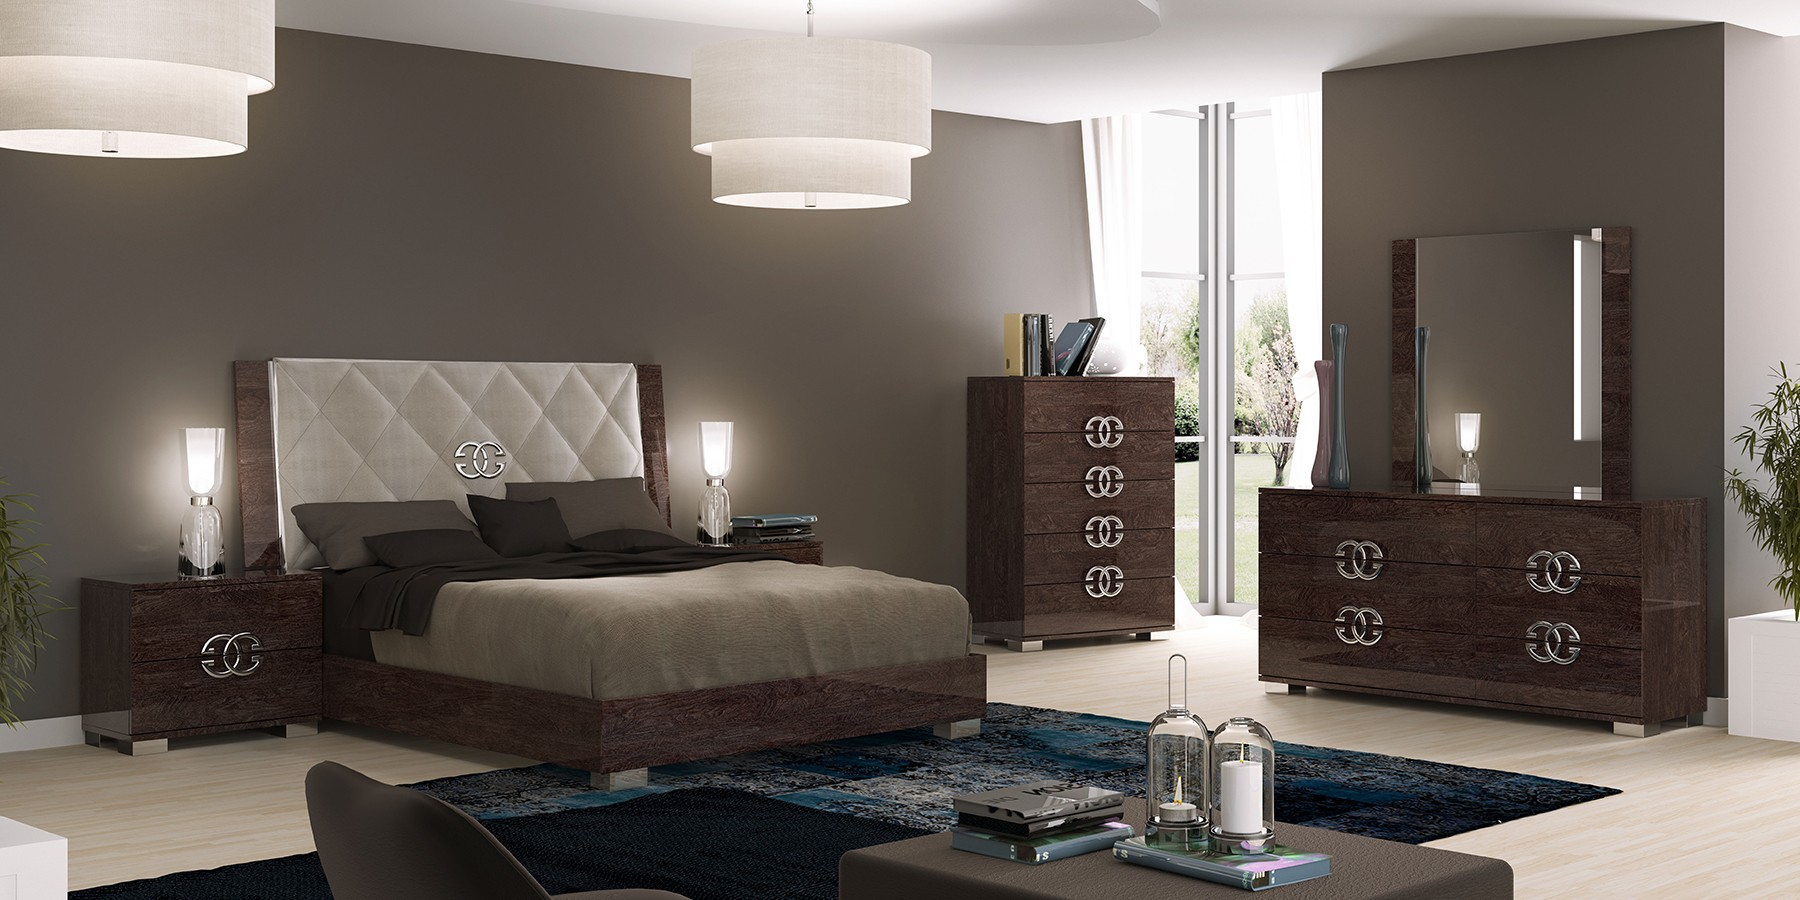 Pride Delux Modern Italian Bedroom Set